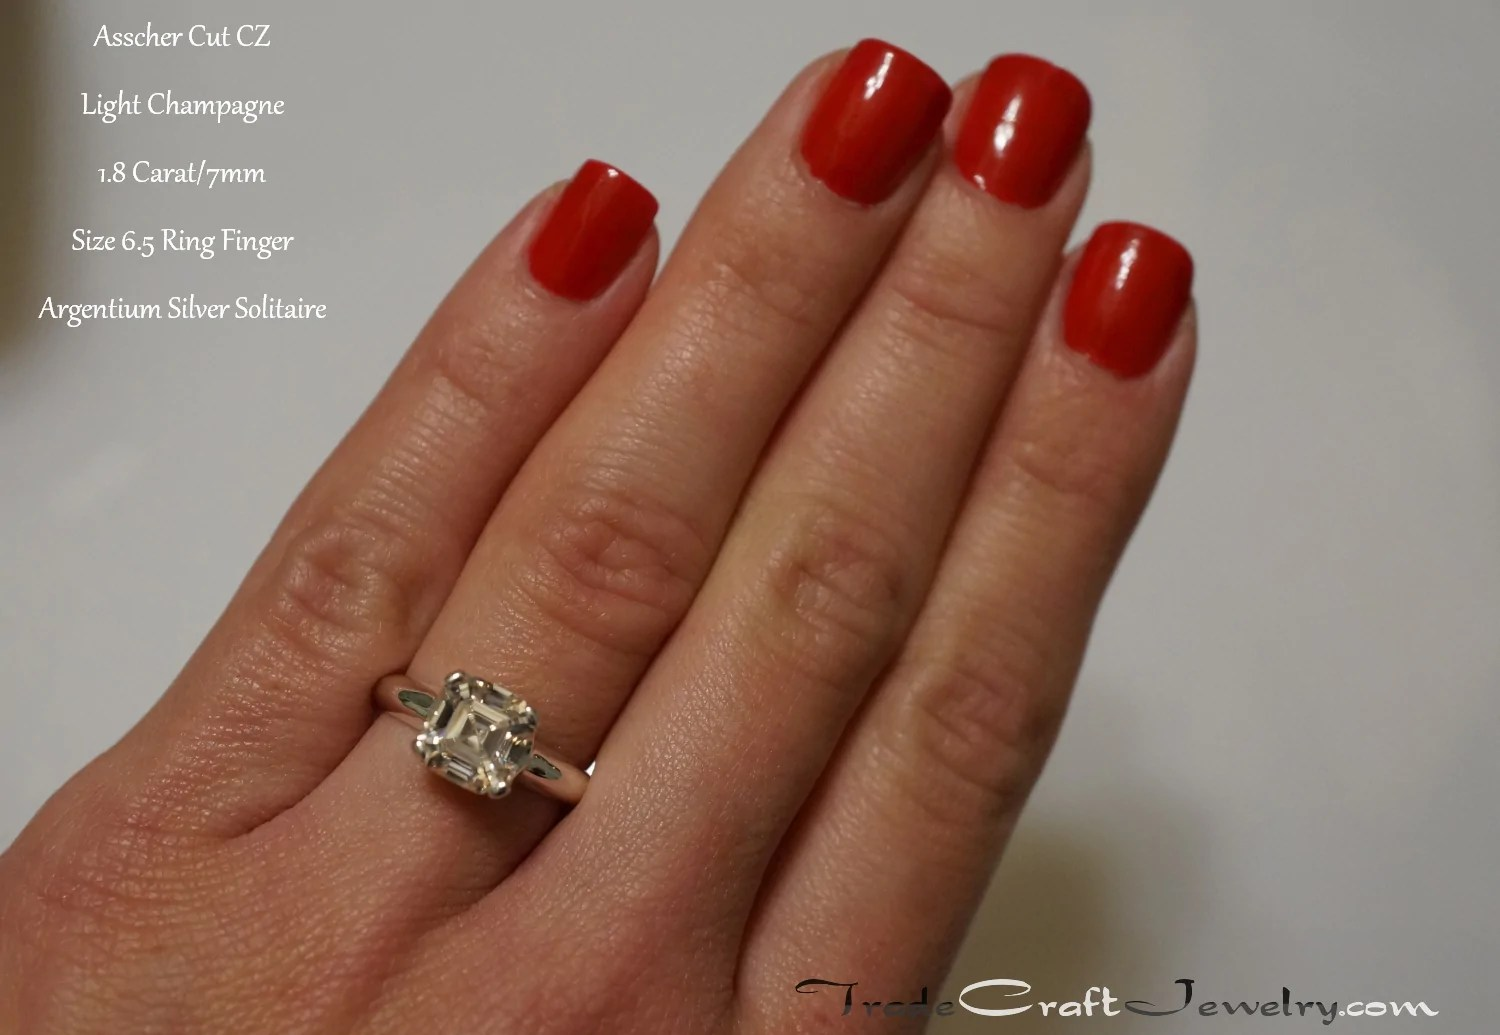 Stone Size Comparisons With Hand Shots Tradecraft Jewelry